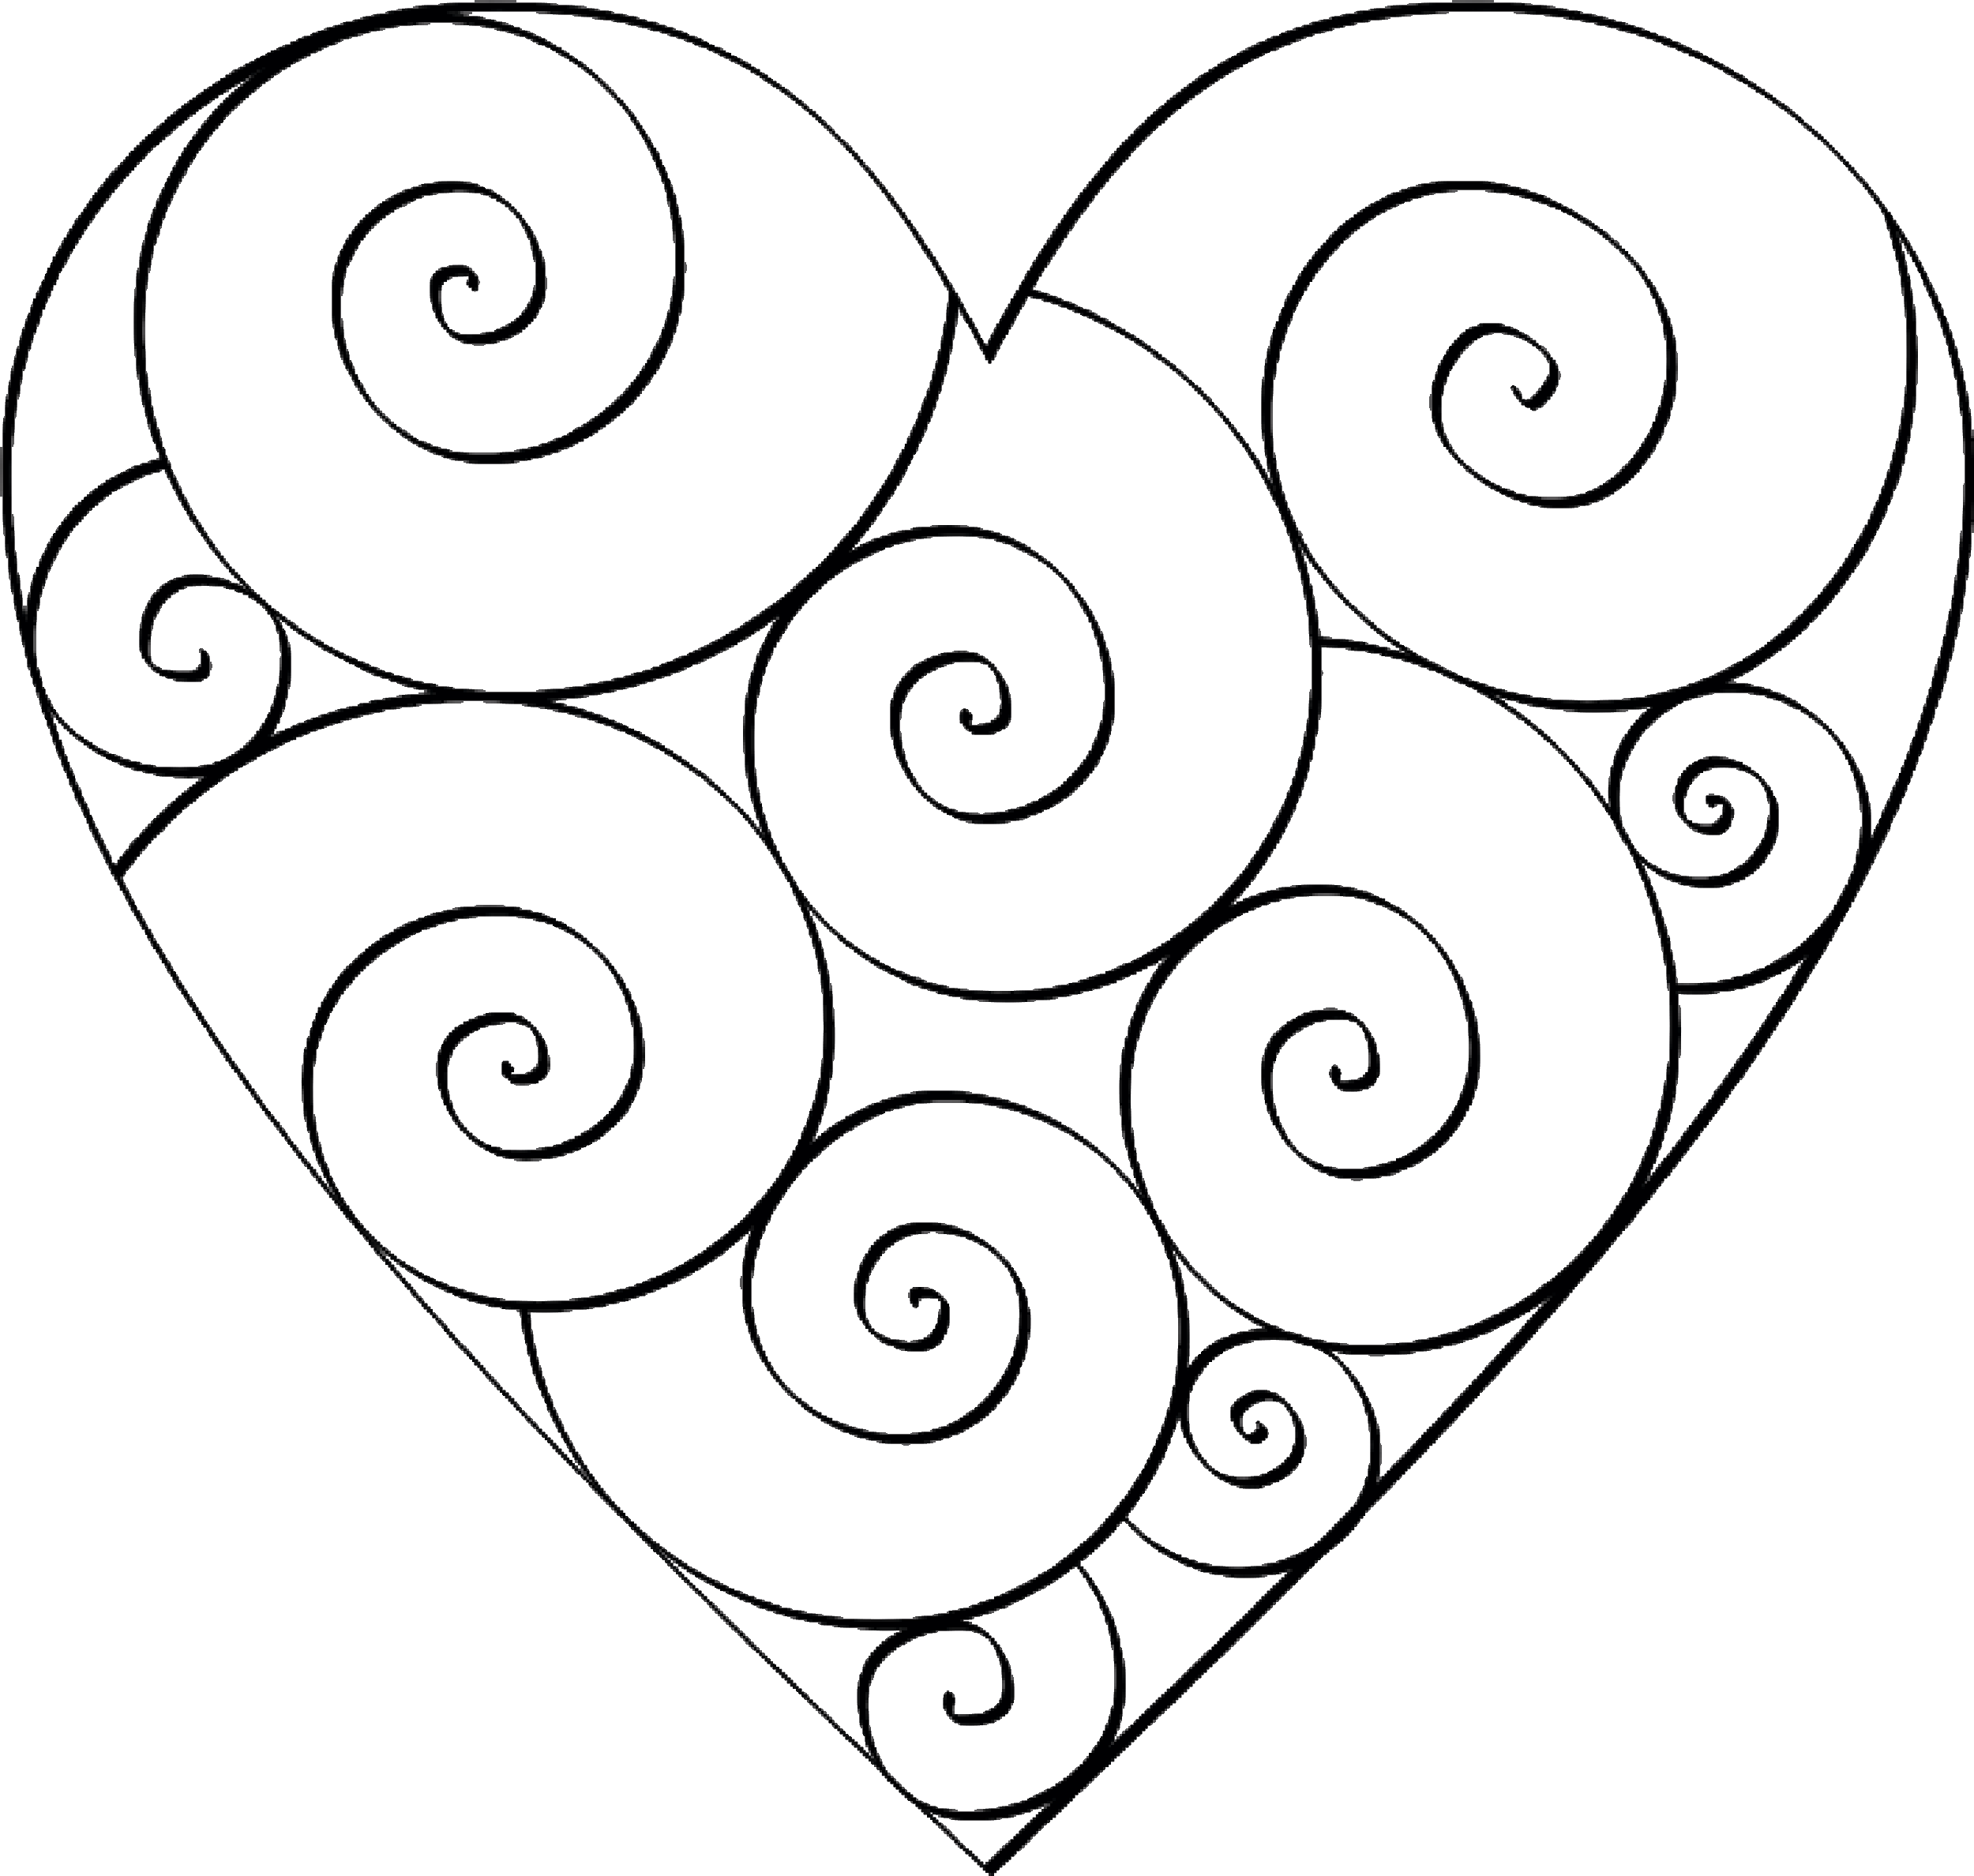 pictures of hearts to color free printable heart templates diy 100 ideas of hearts pictures color to